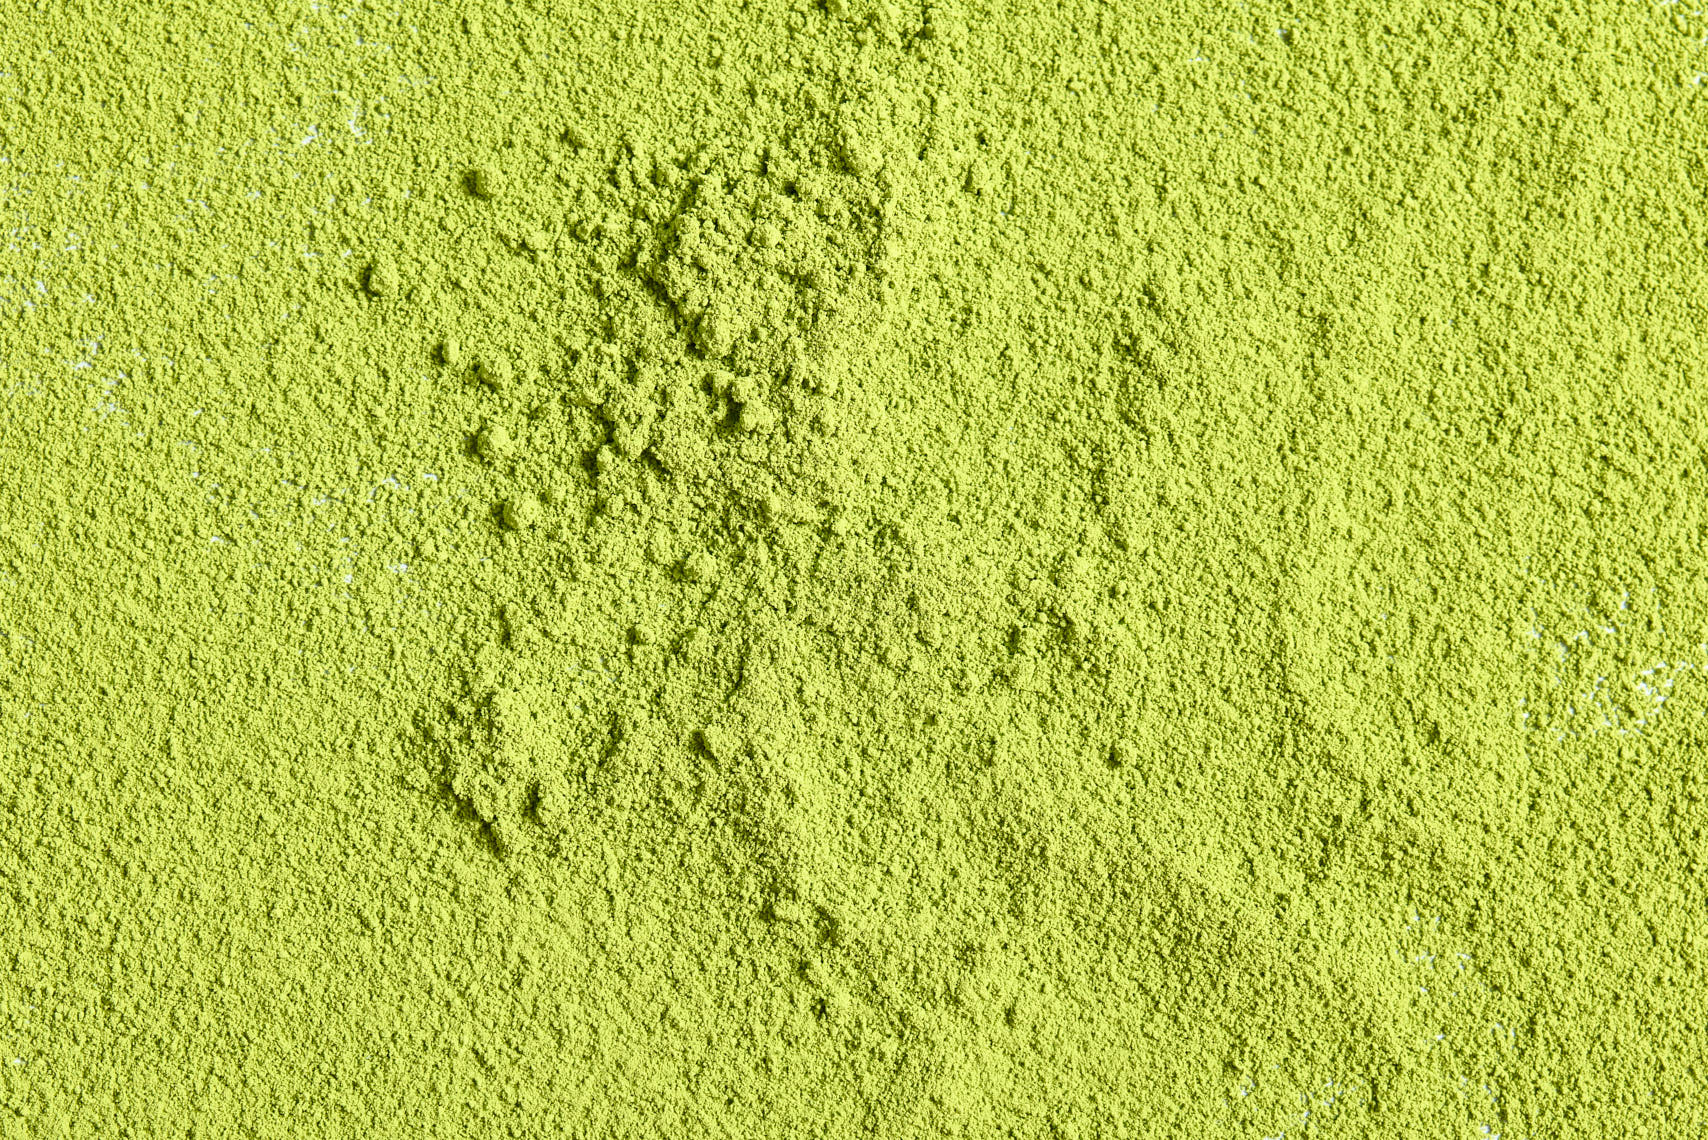 Matcha Tea Powder - Drink Photographer New Jersey